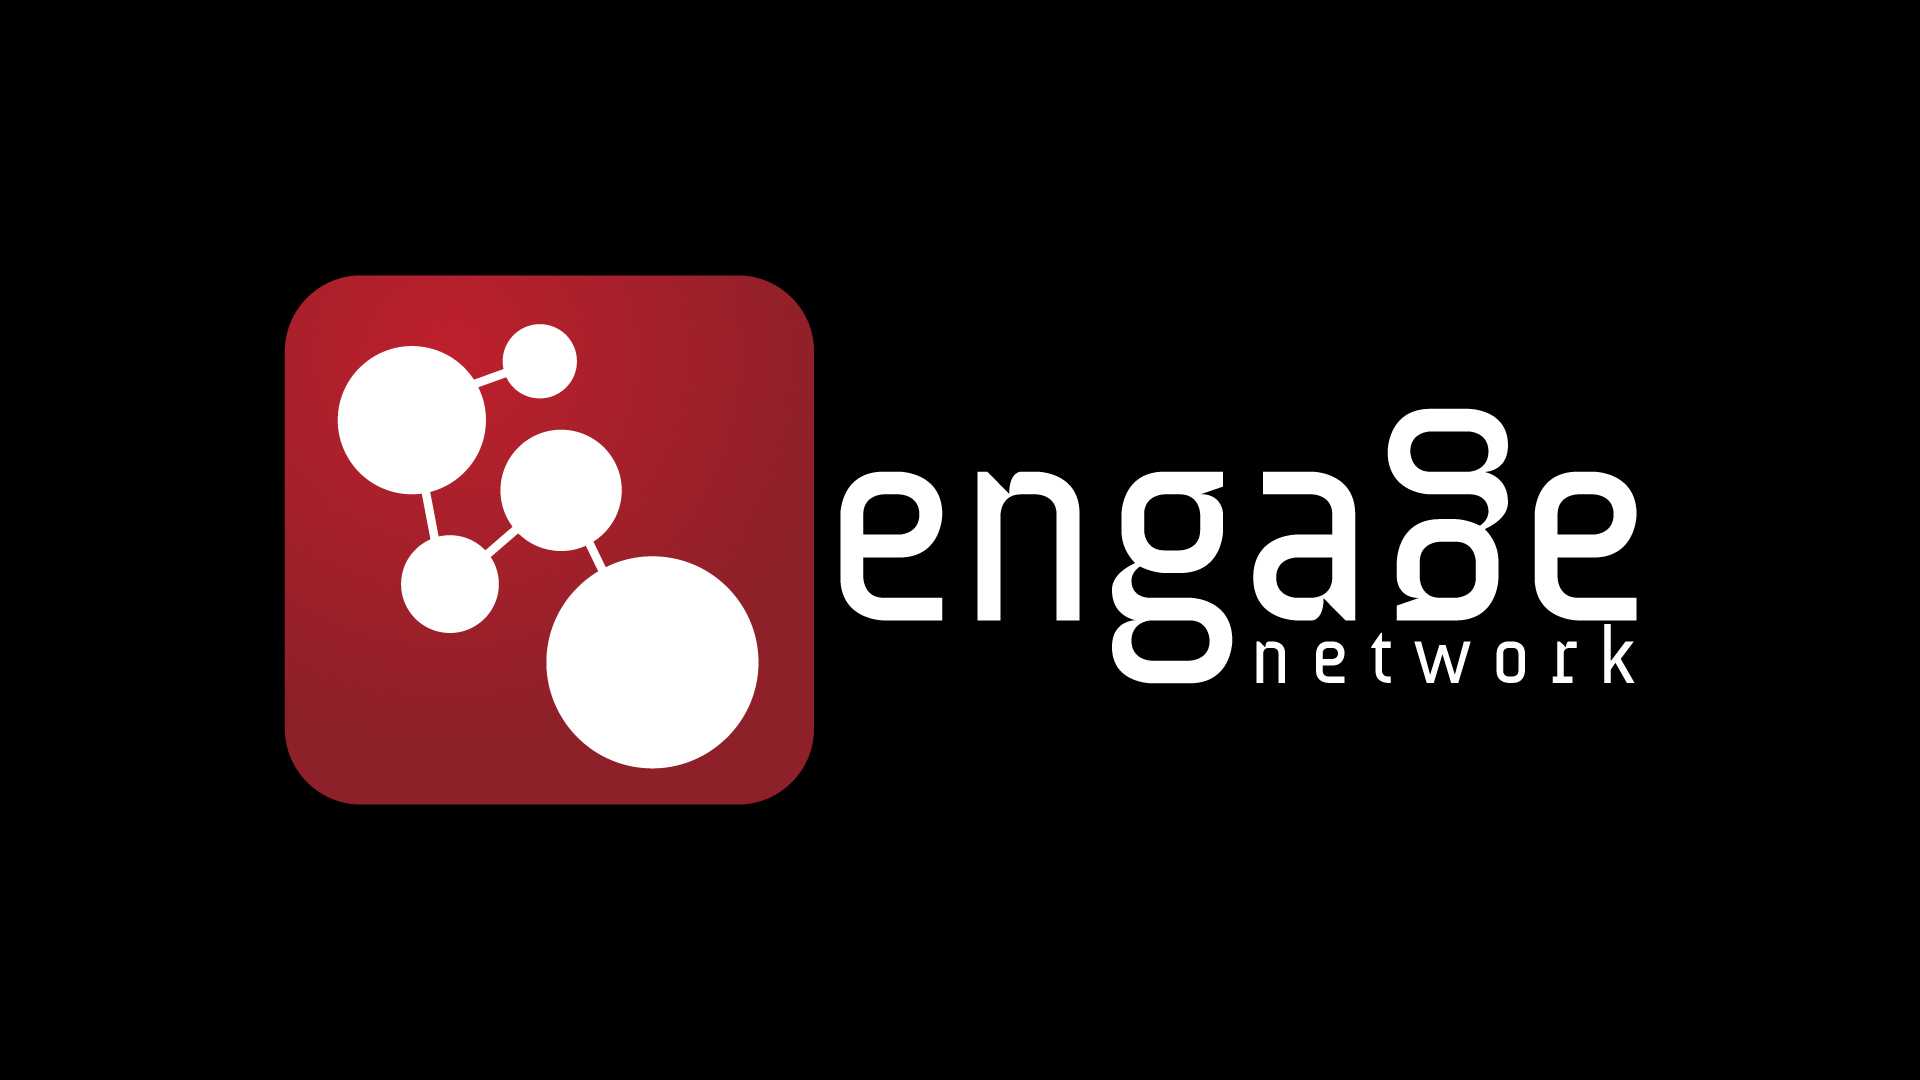 Engage Network